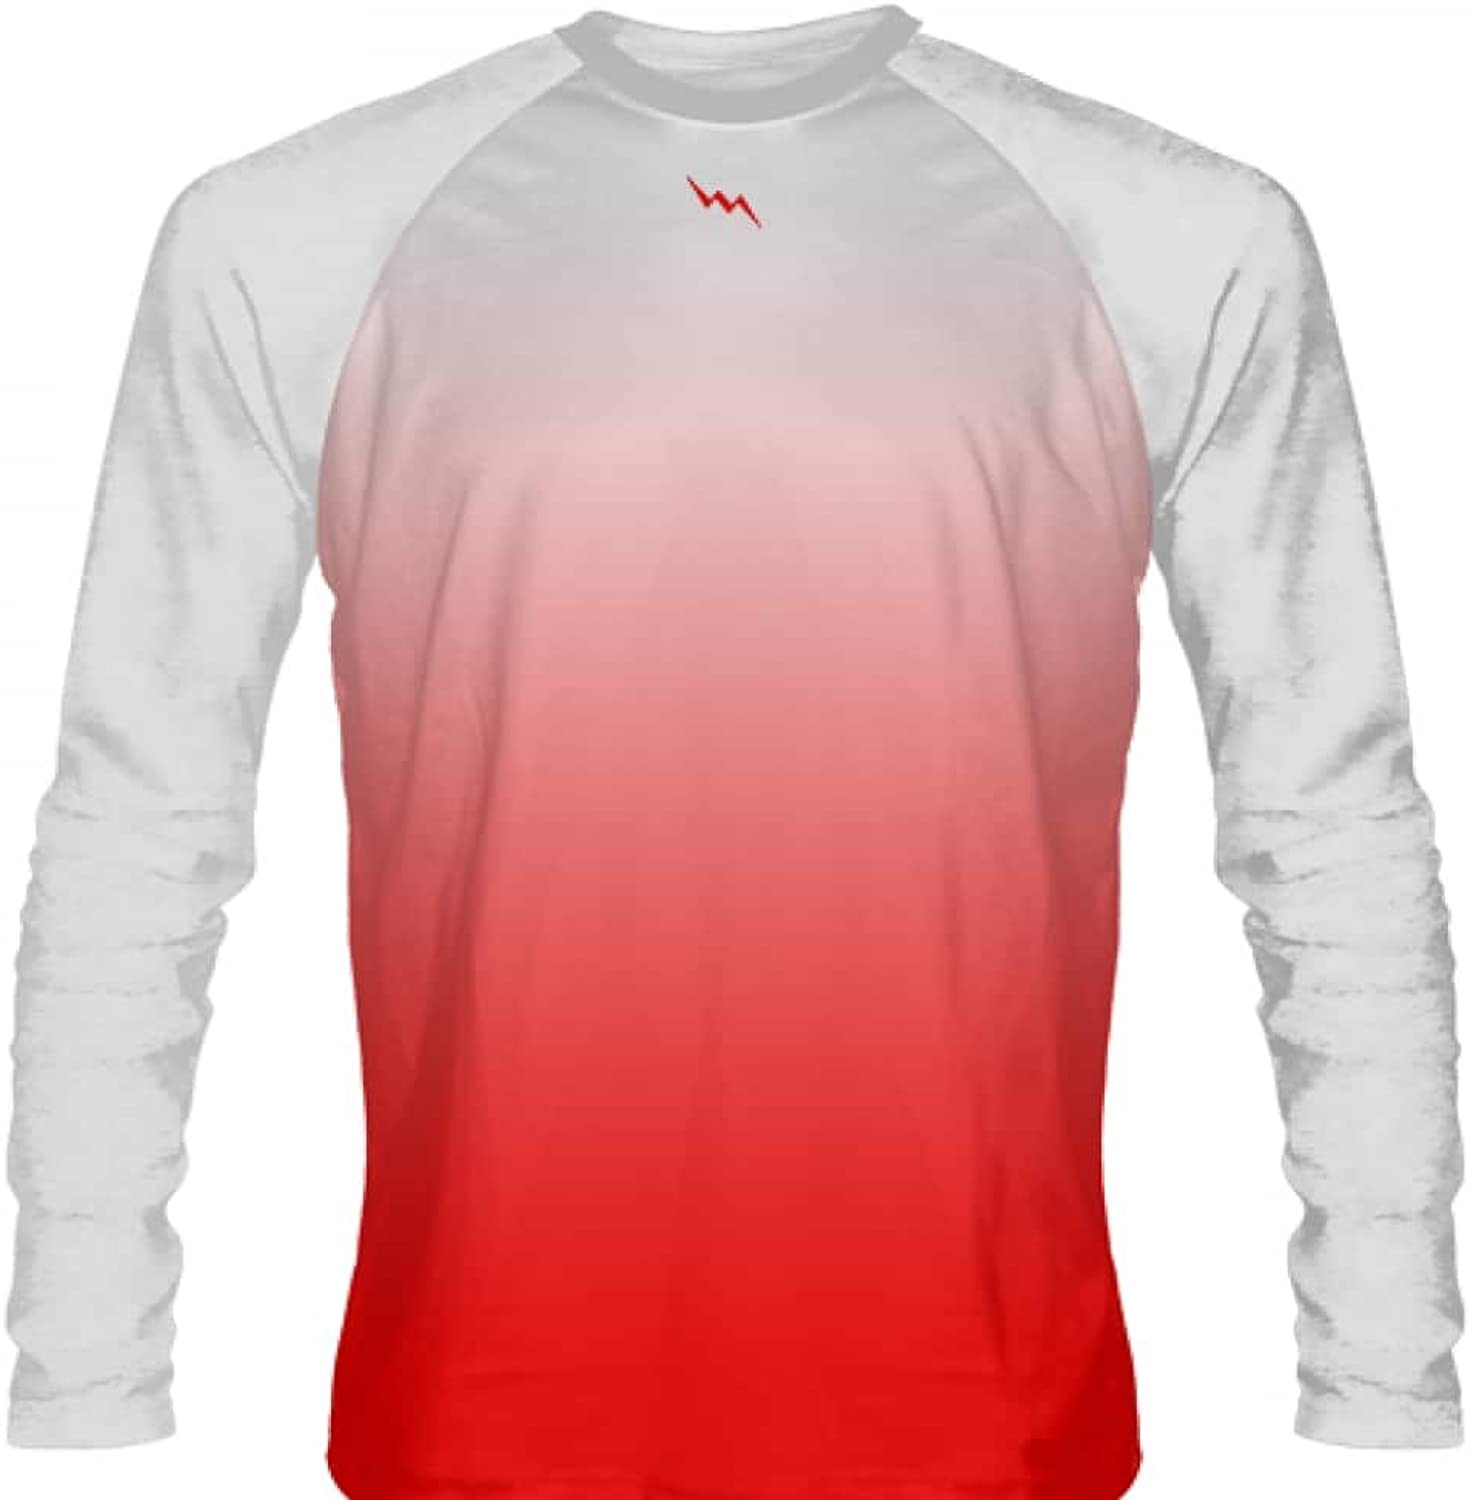 LightningWear White Red Fade Ombre Long Sleeve Shirts Basketball Long Sleeve Shirt